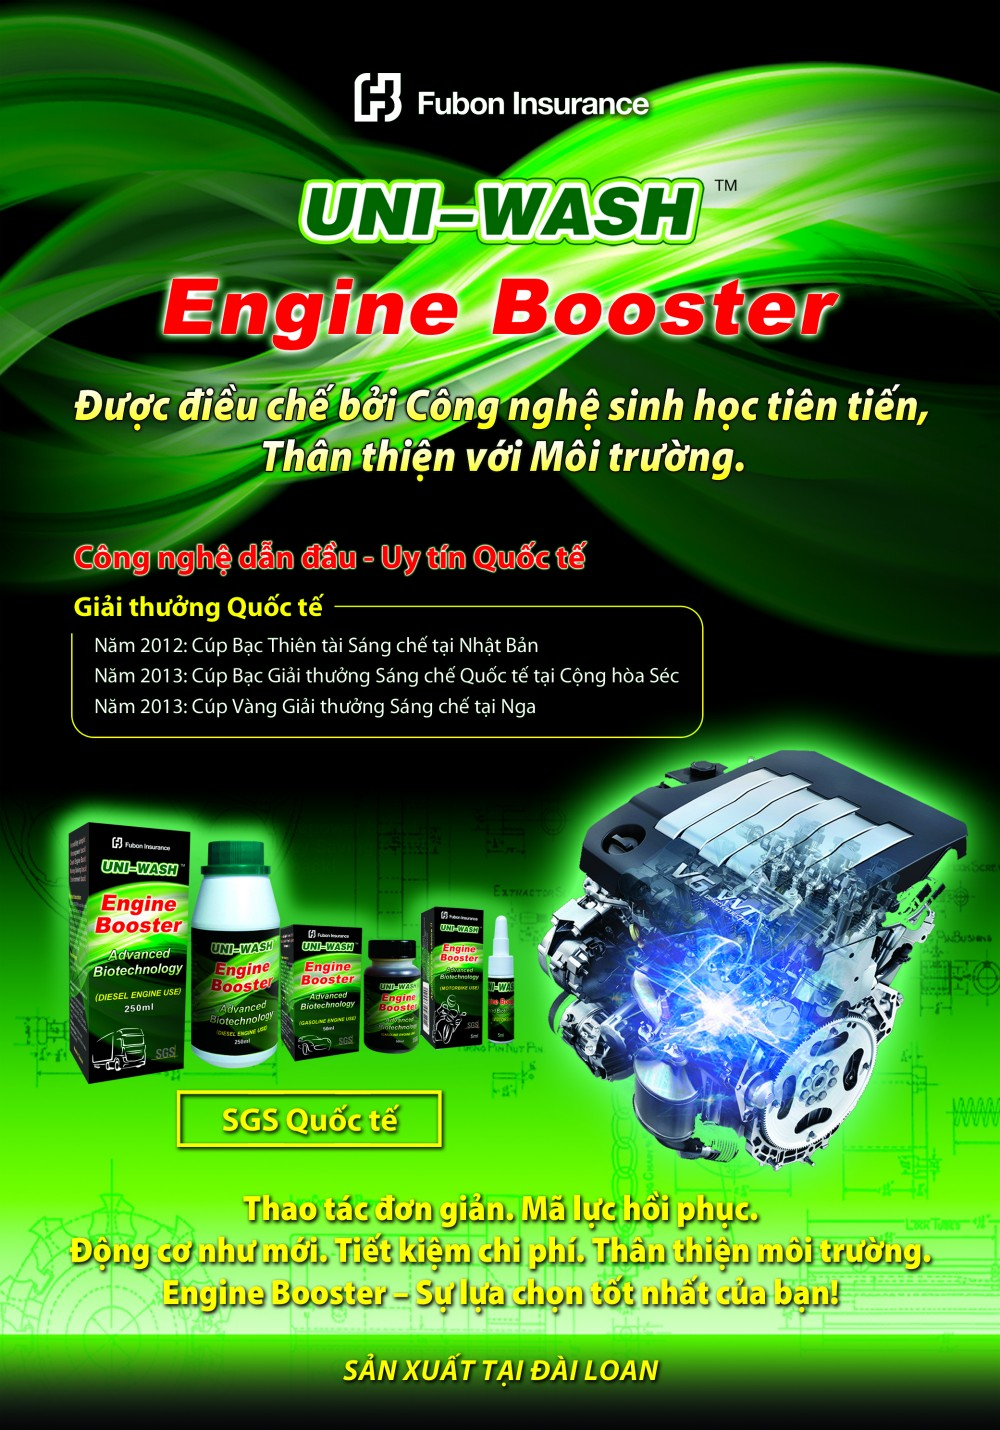 HOAT CHAT KICH HOAT DONG CO ENGINE BOOSTER VOI CONG NGHE ION MOI NHAT